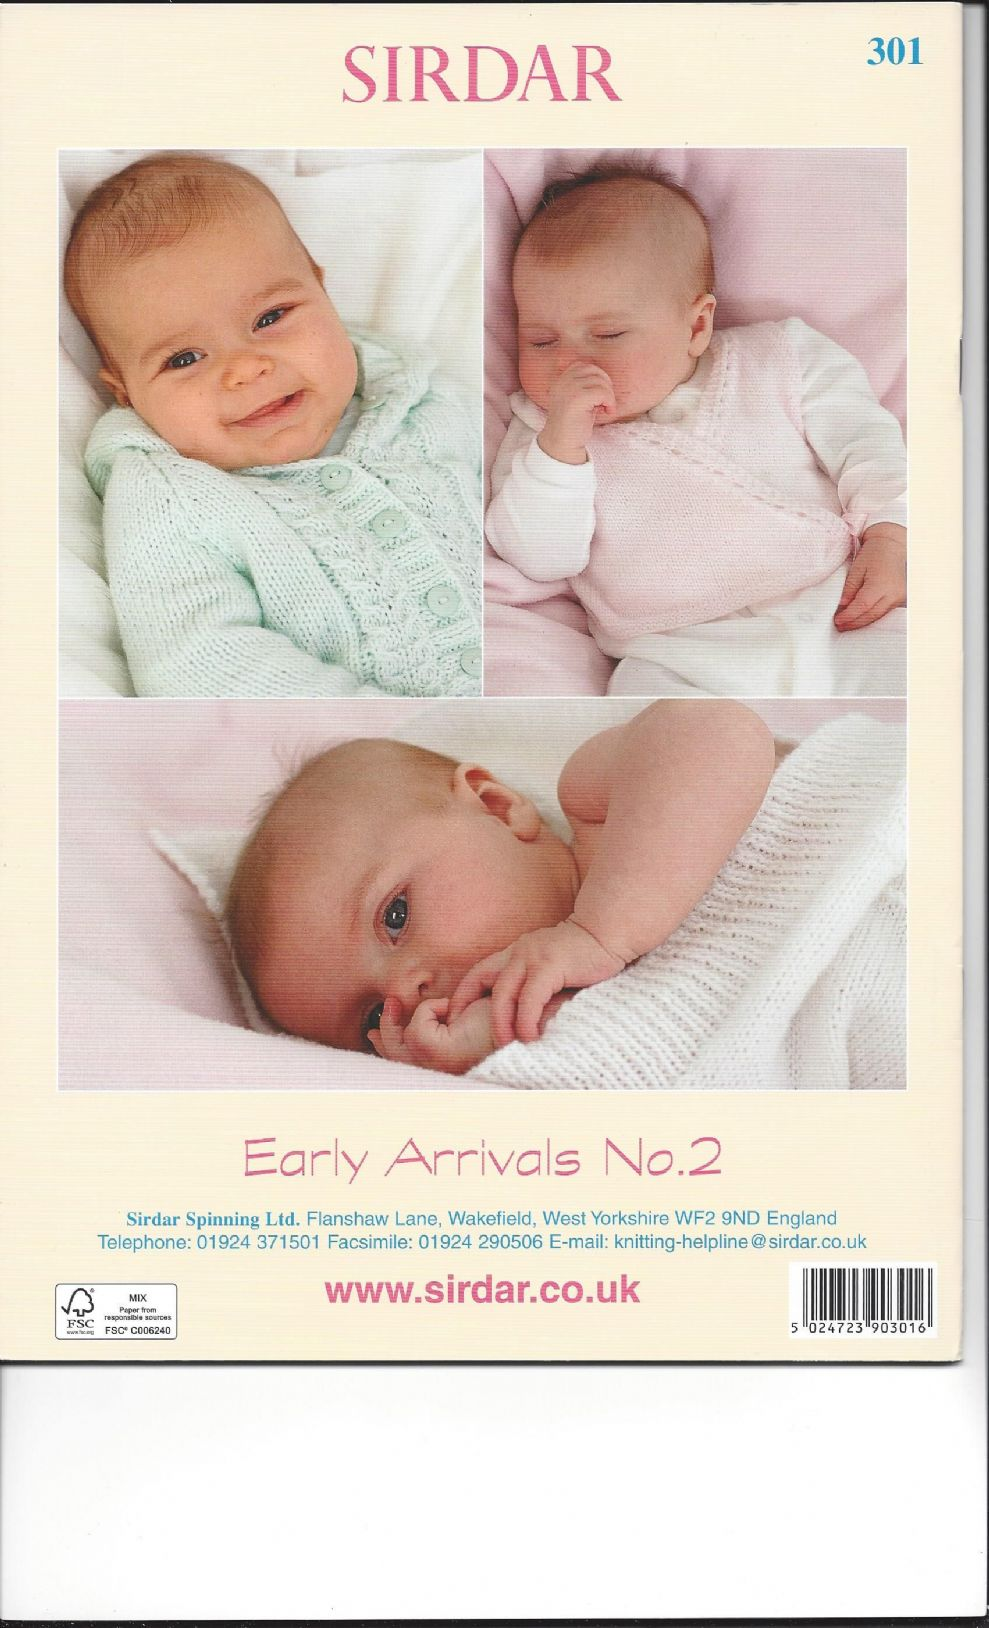 Sirdar Knitting Pattern Books Baby : Sirdar Book 301 - Early Arrivals No. 2 - Sirdar Snuggly ...